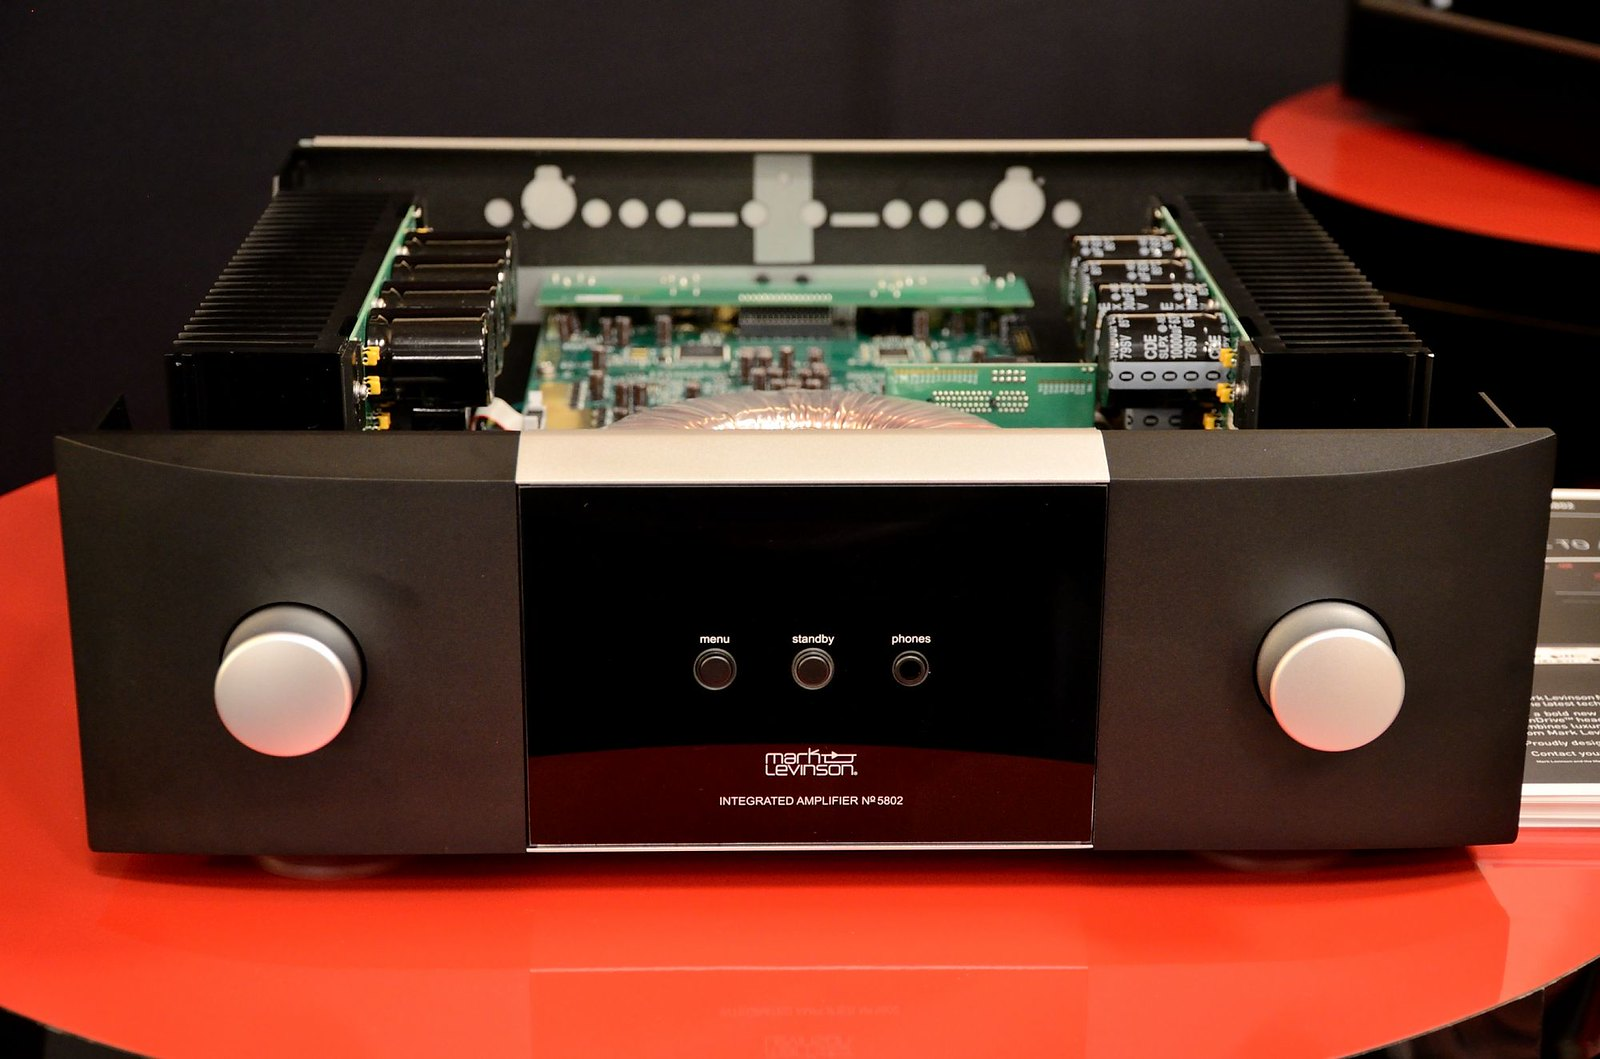 Mark Levinson 5000 Series Integrated Amps Introduced at RMAF